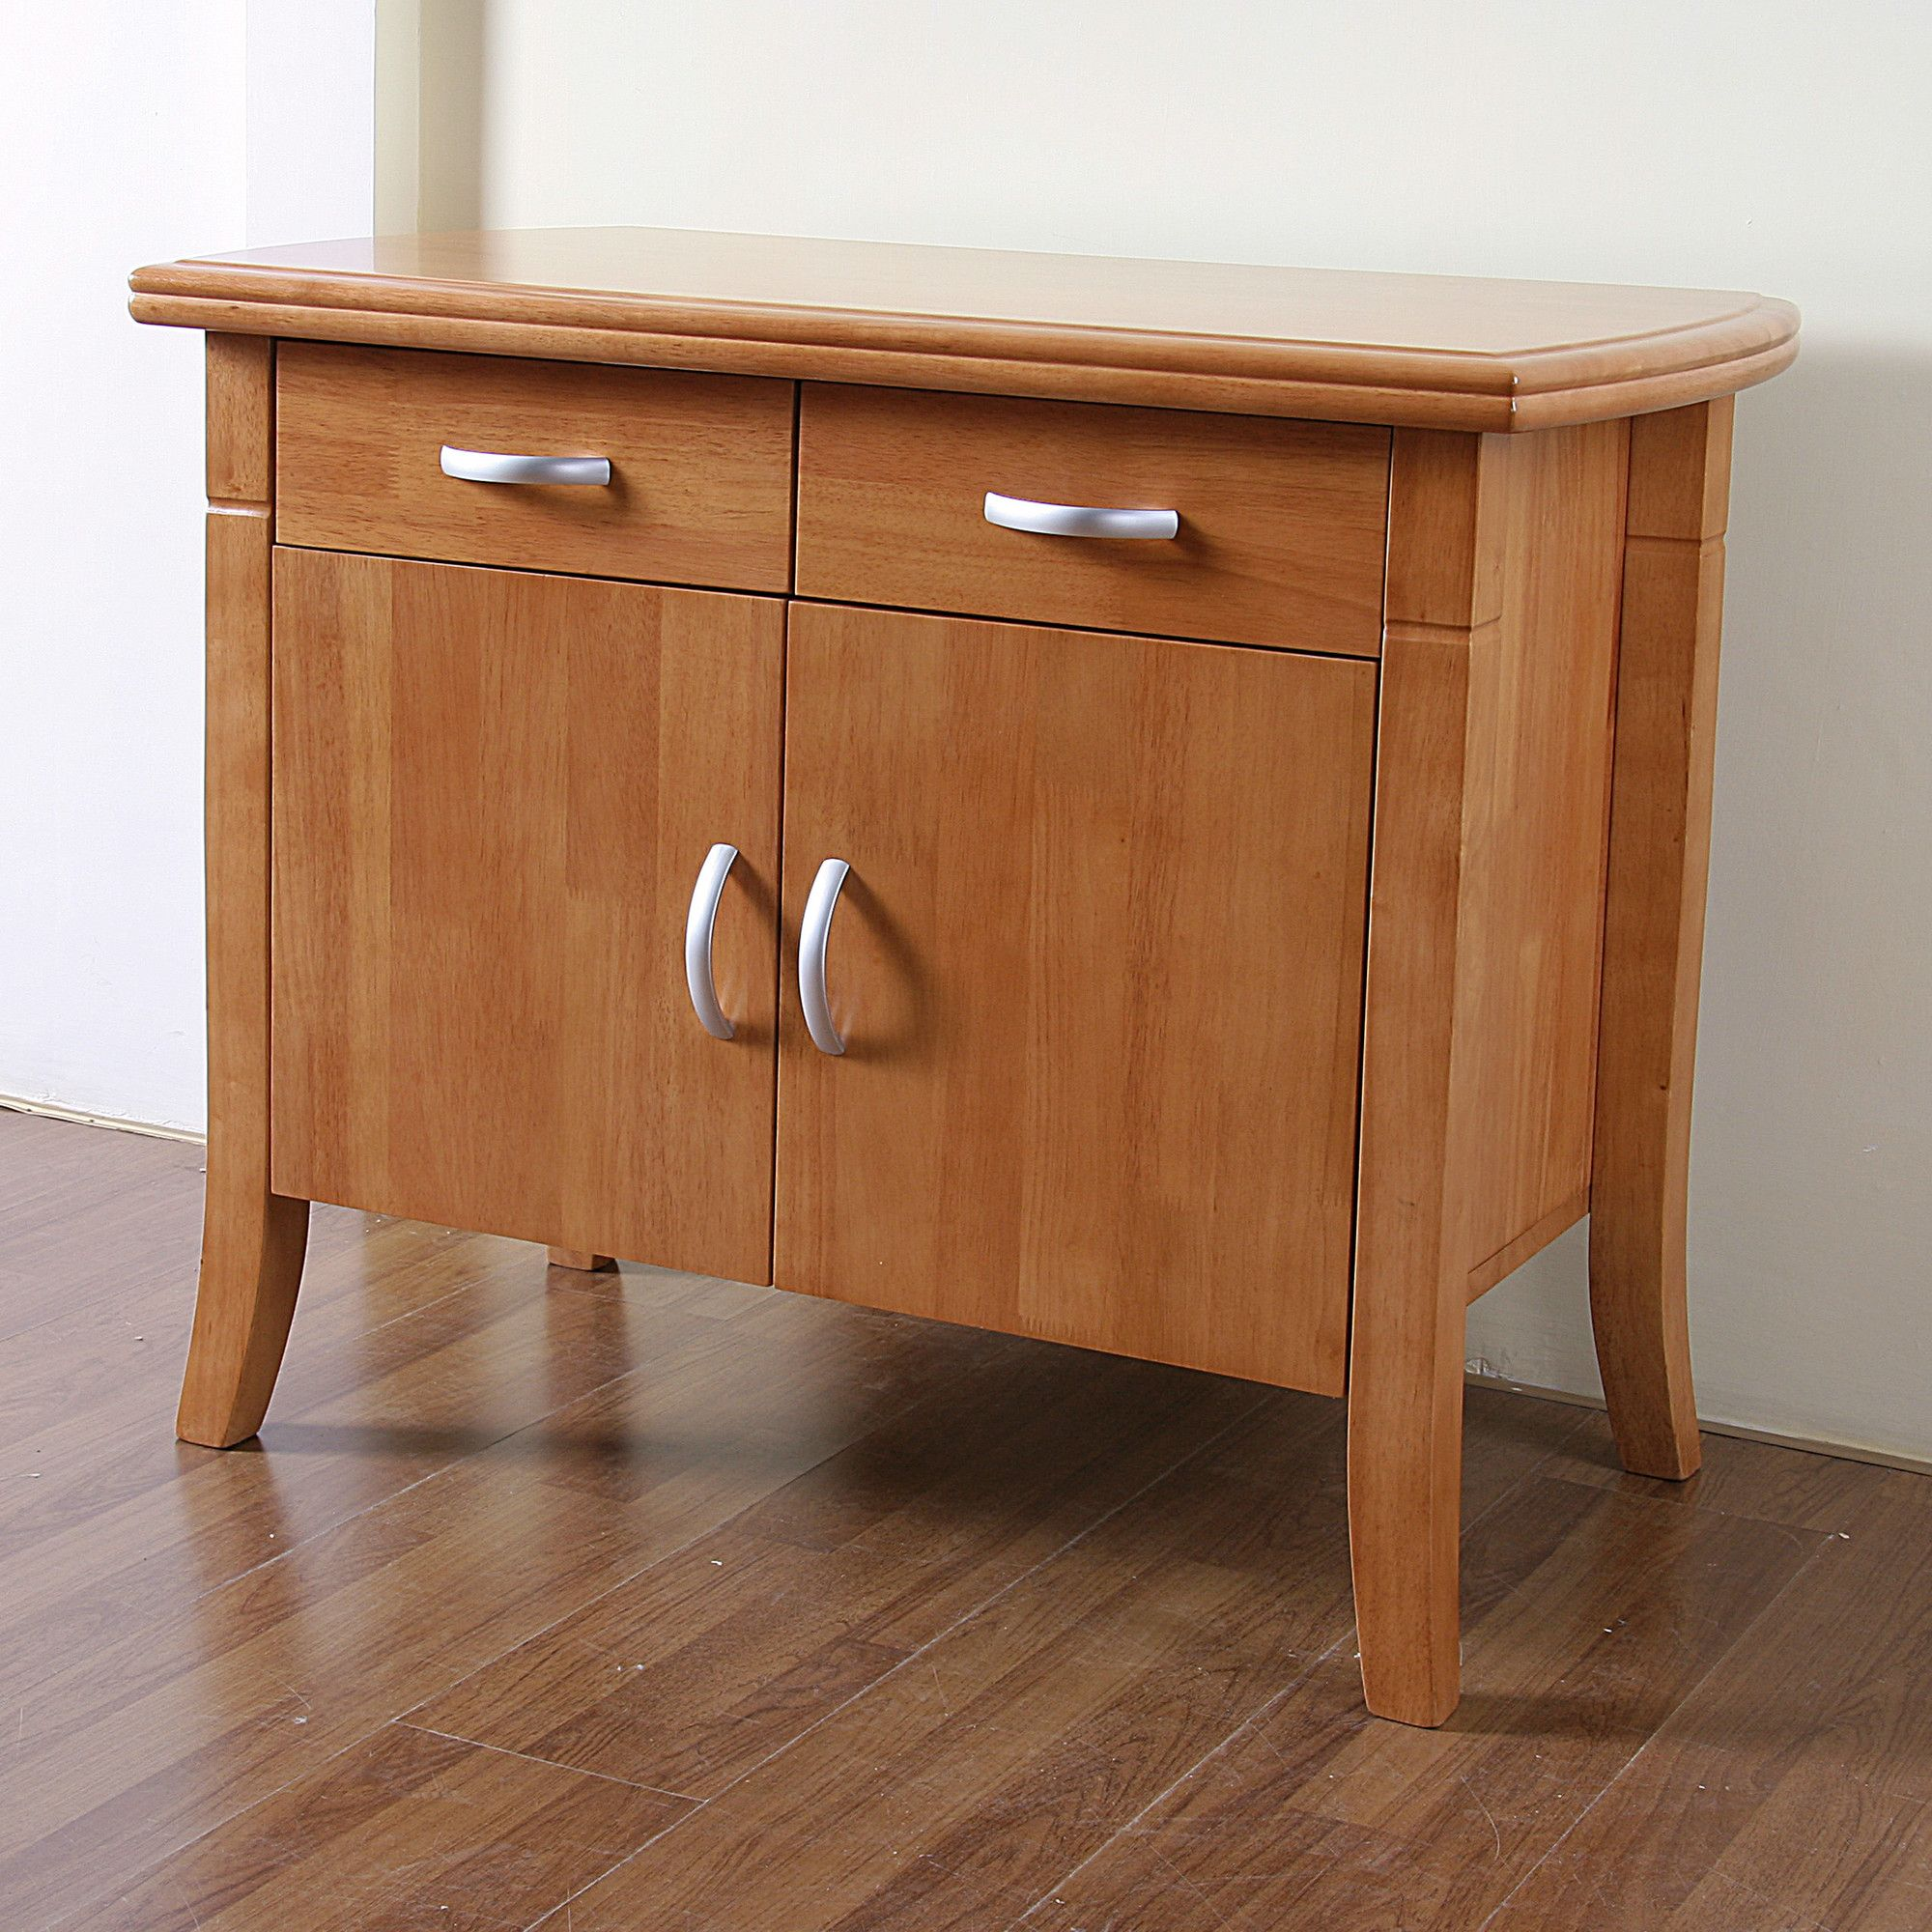 G&P Furniture Windsor House Sideboard - Maple at Tescos Direct